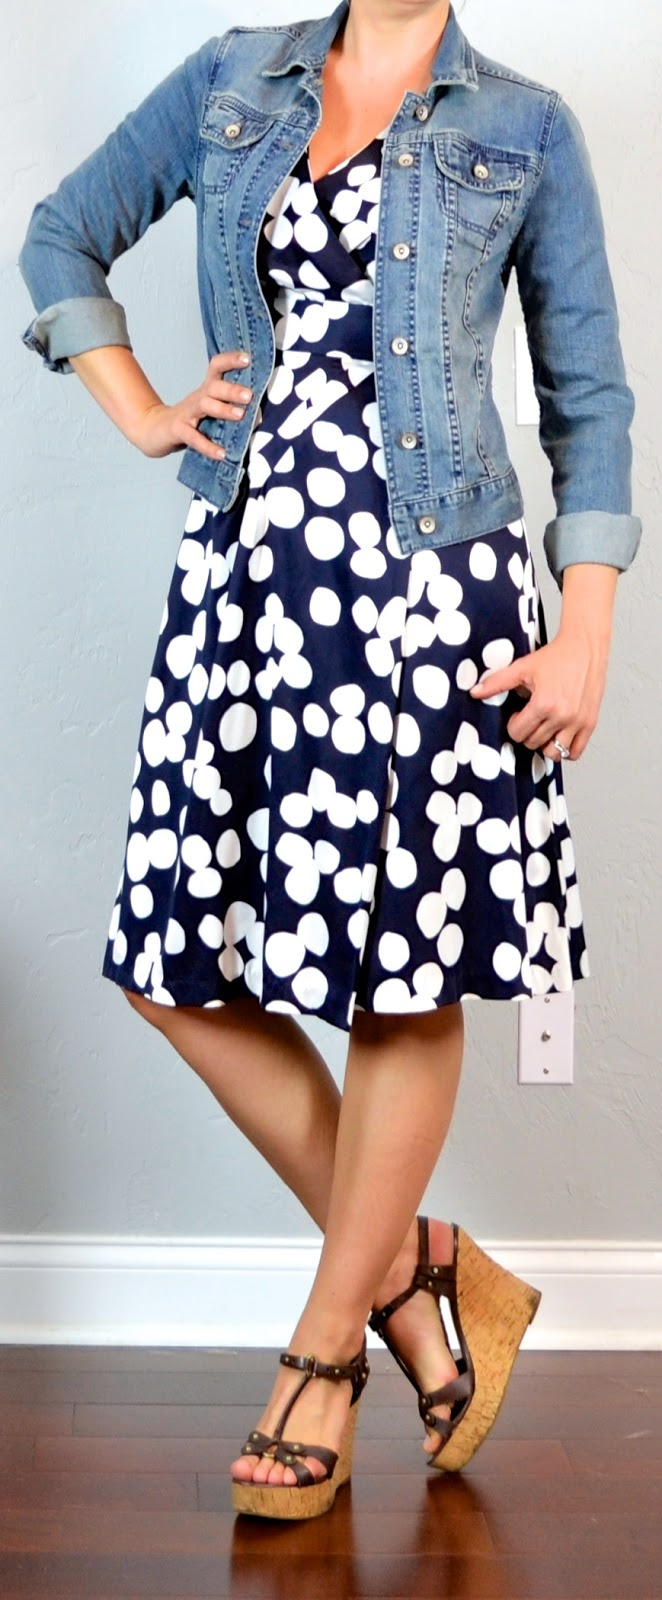 Outfit Posts Outfit Post Polka-dot Dress Jean Jacket ...